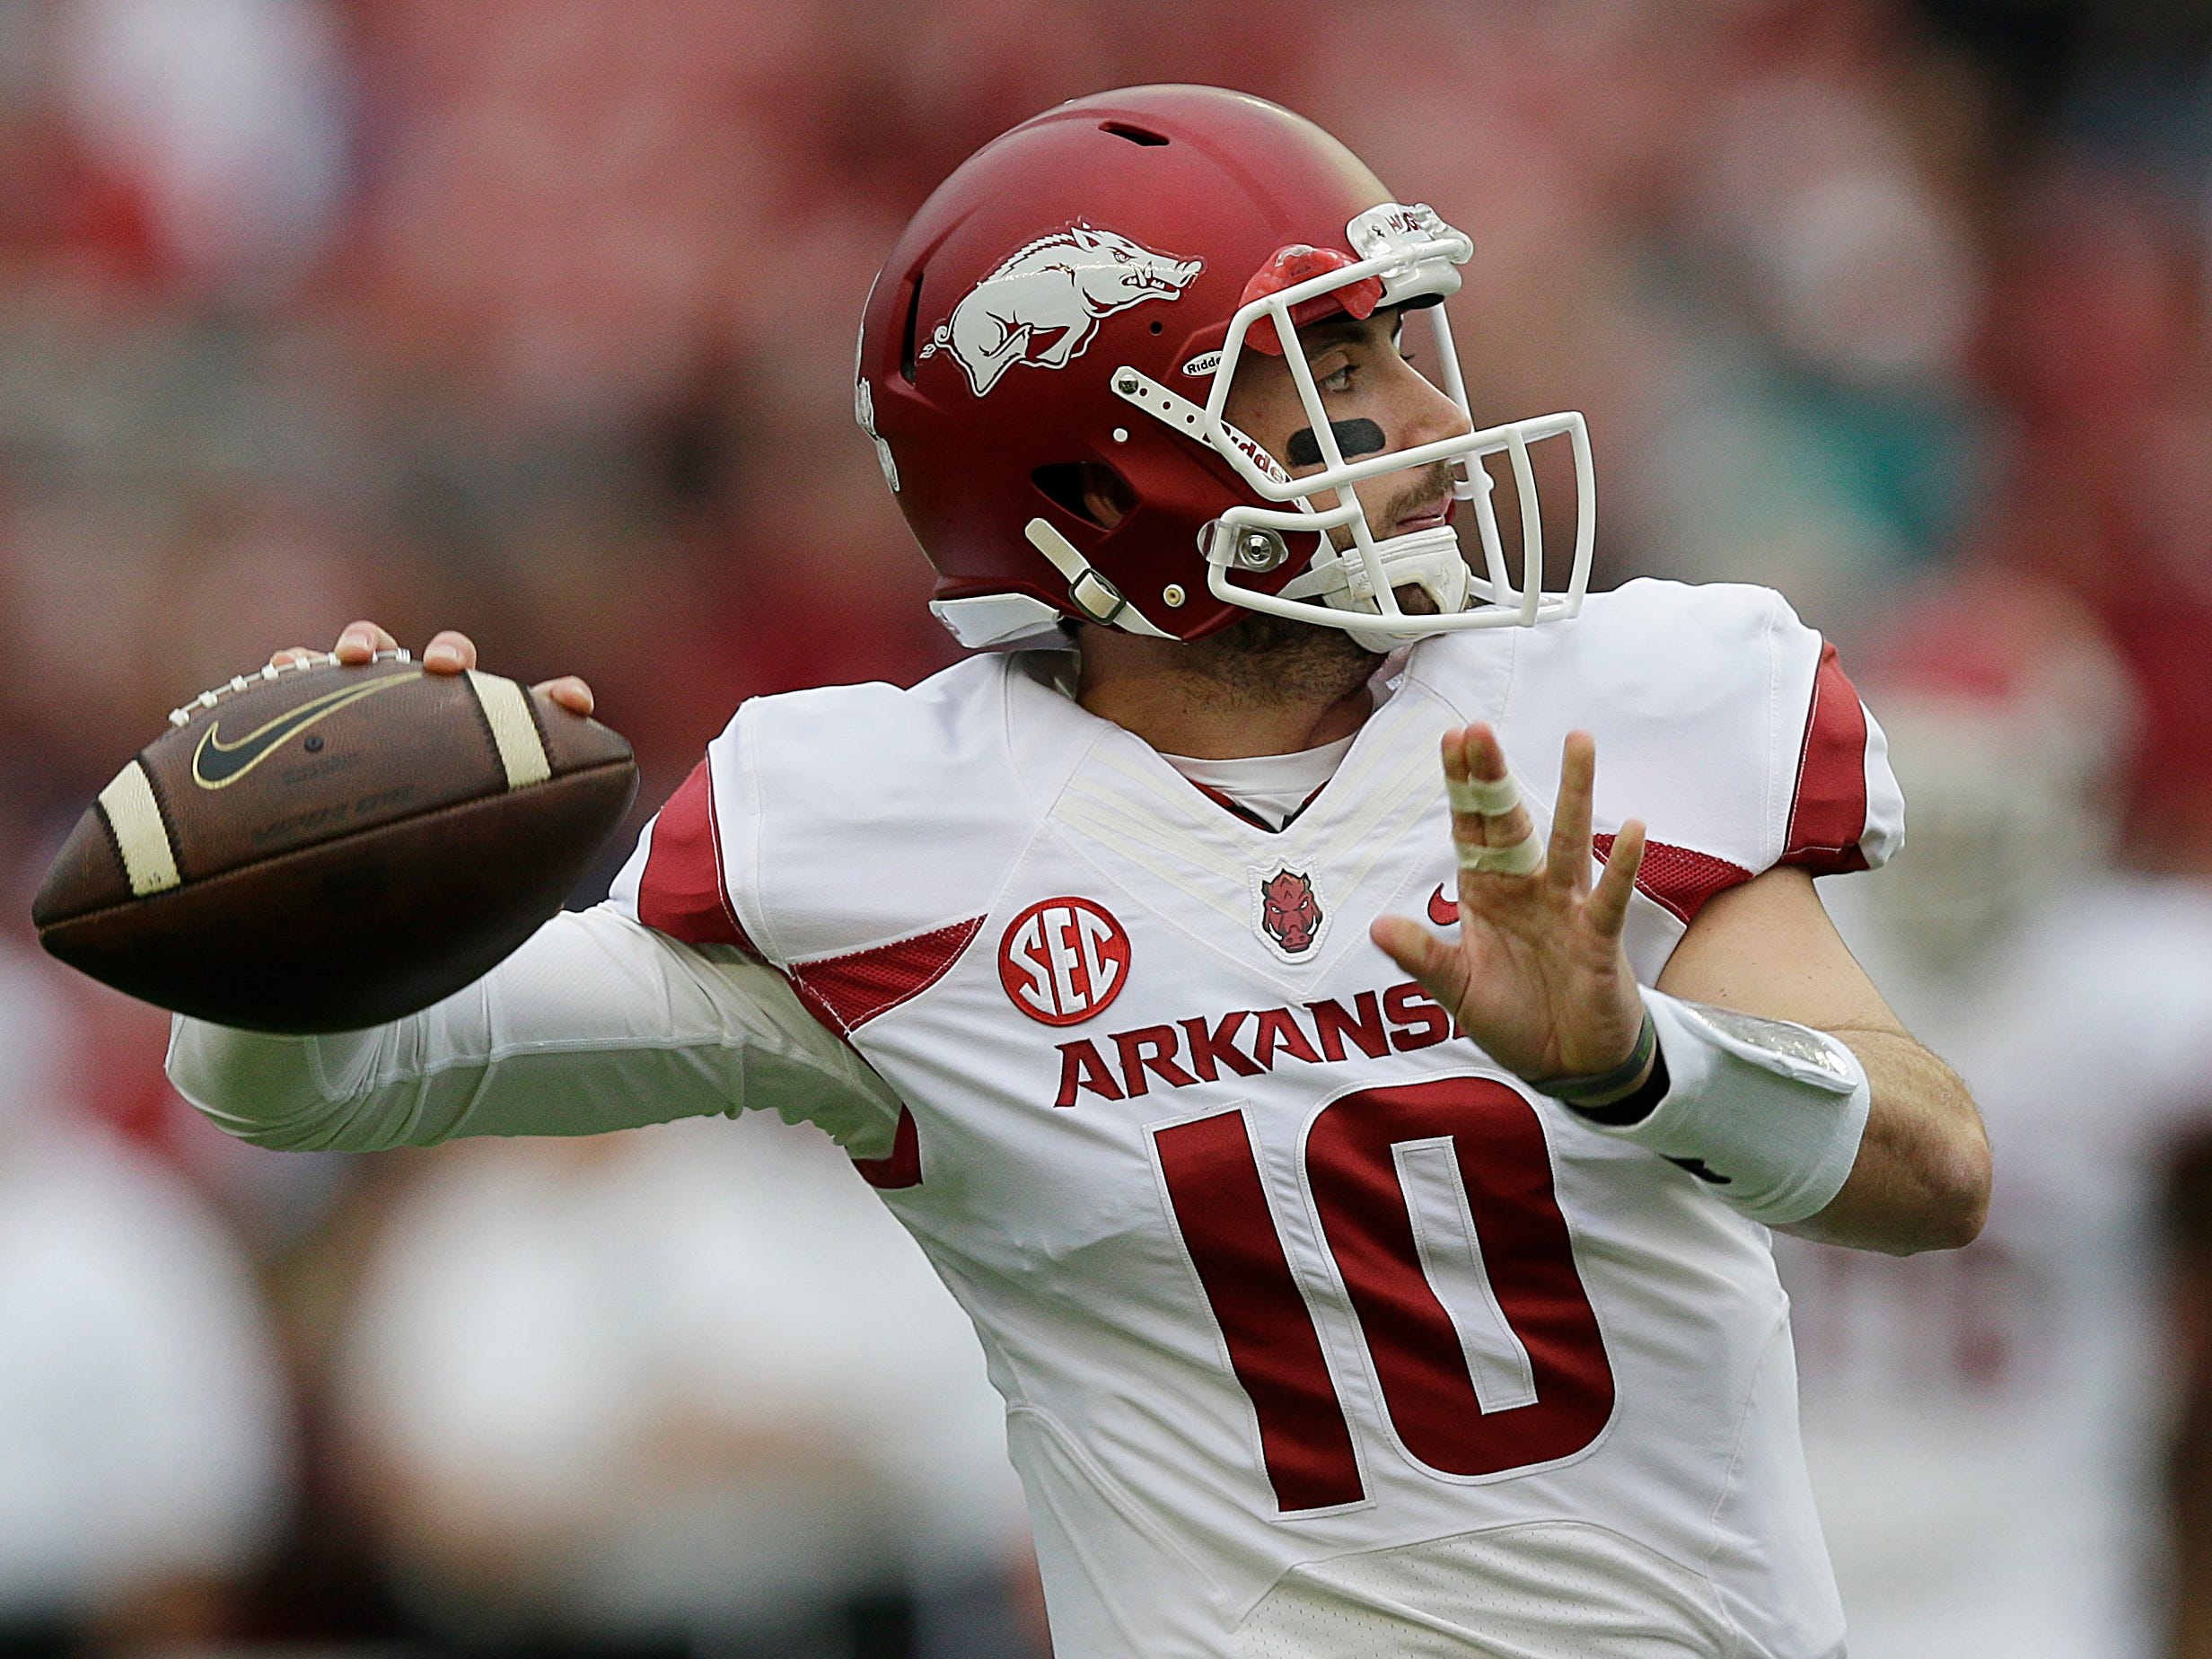 Arkansas quarterback Brandon Allen (10) sets back to pass before the first half of an NCAA college football game, Saturday, Oct. 10, 2015, in Tuscaloosa, Ala. (AP Photo/Brynn Anderson)